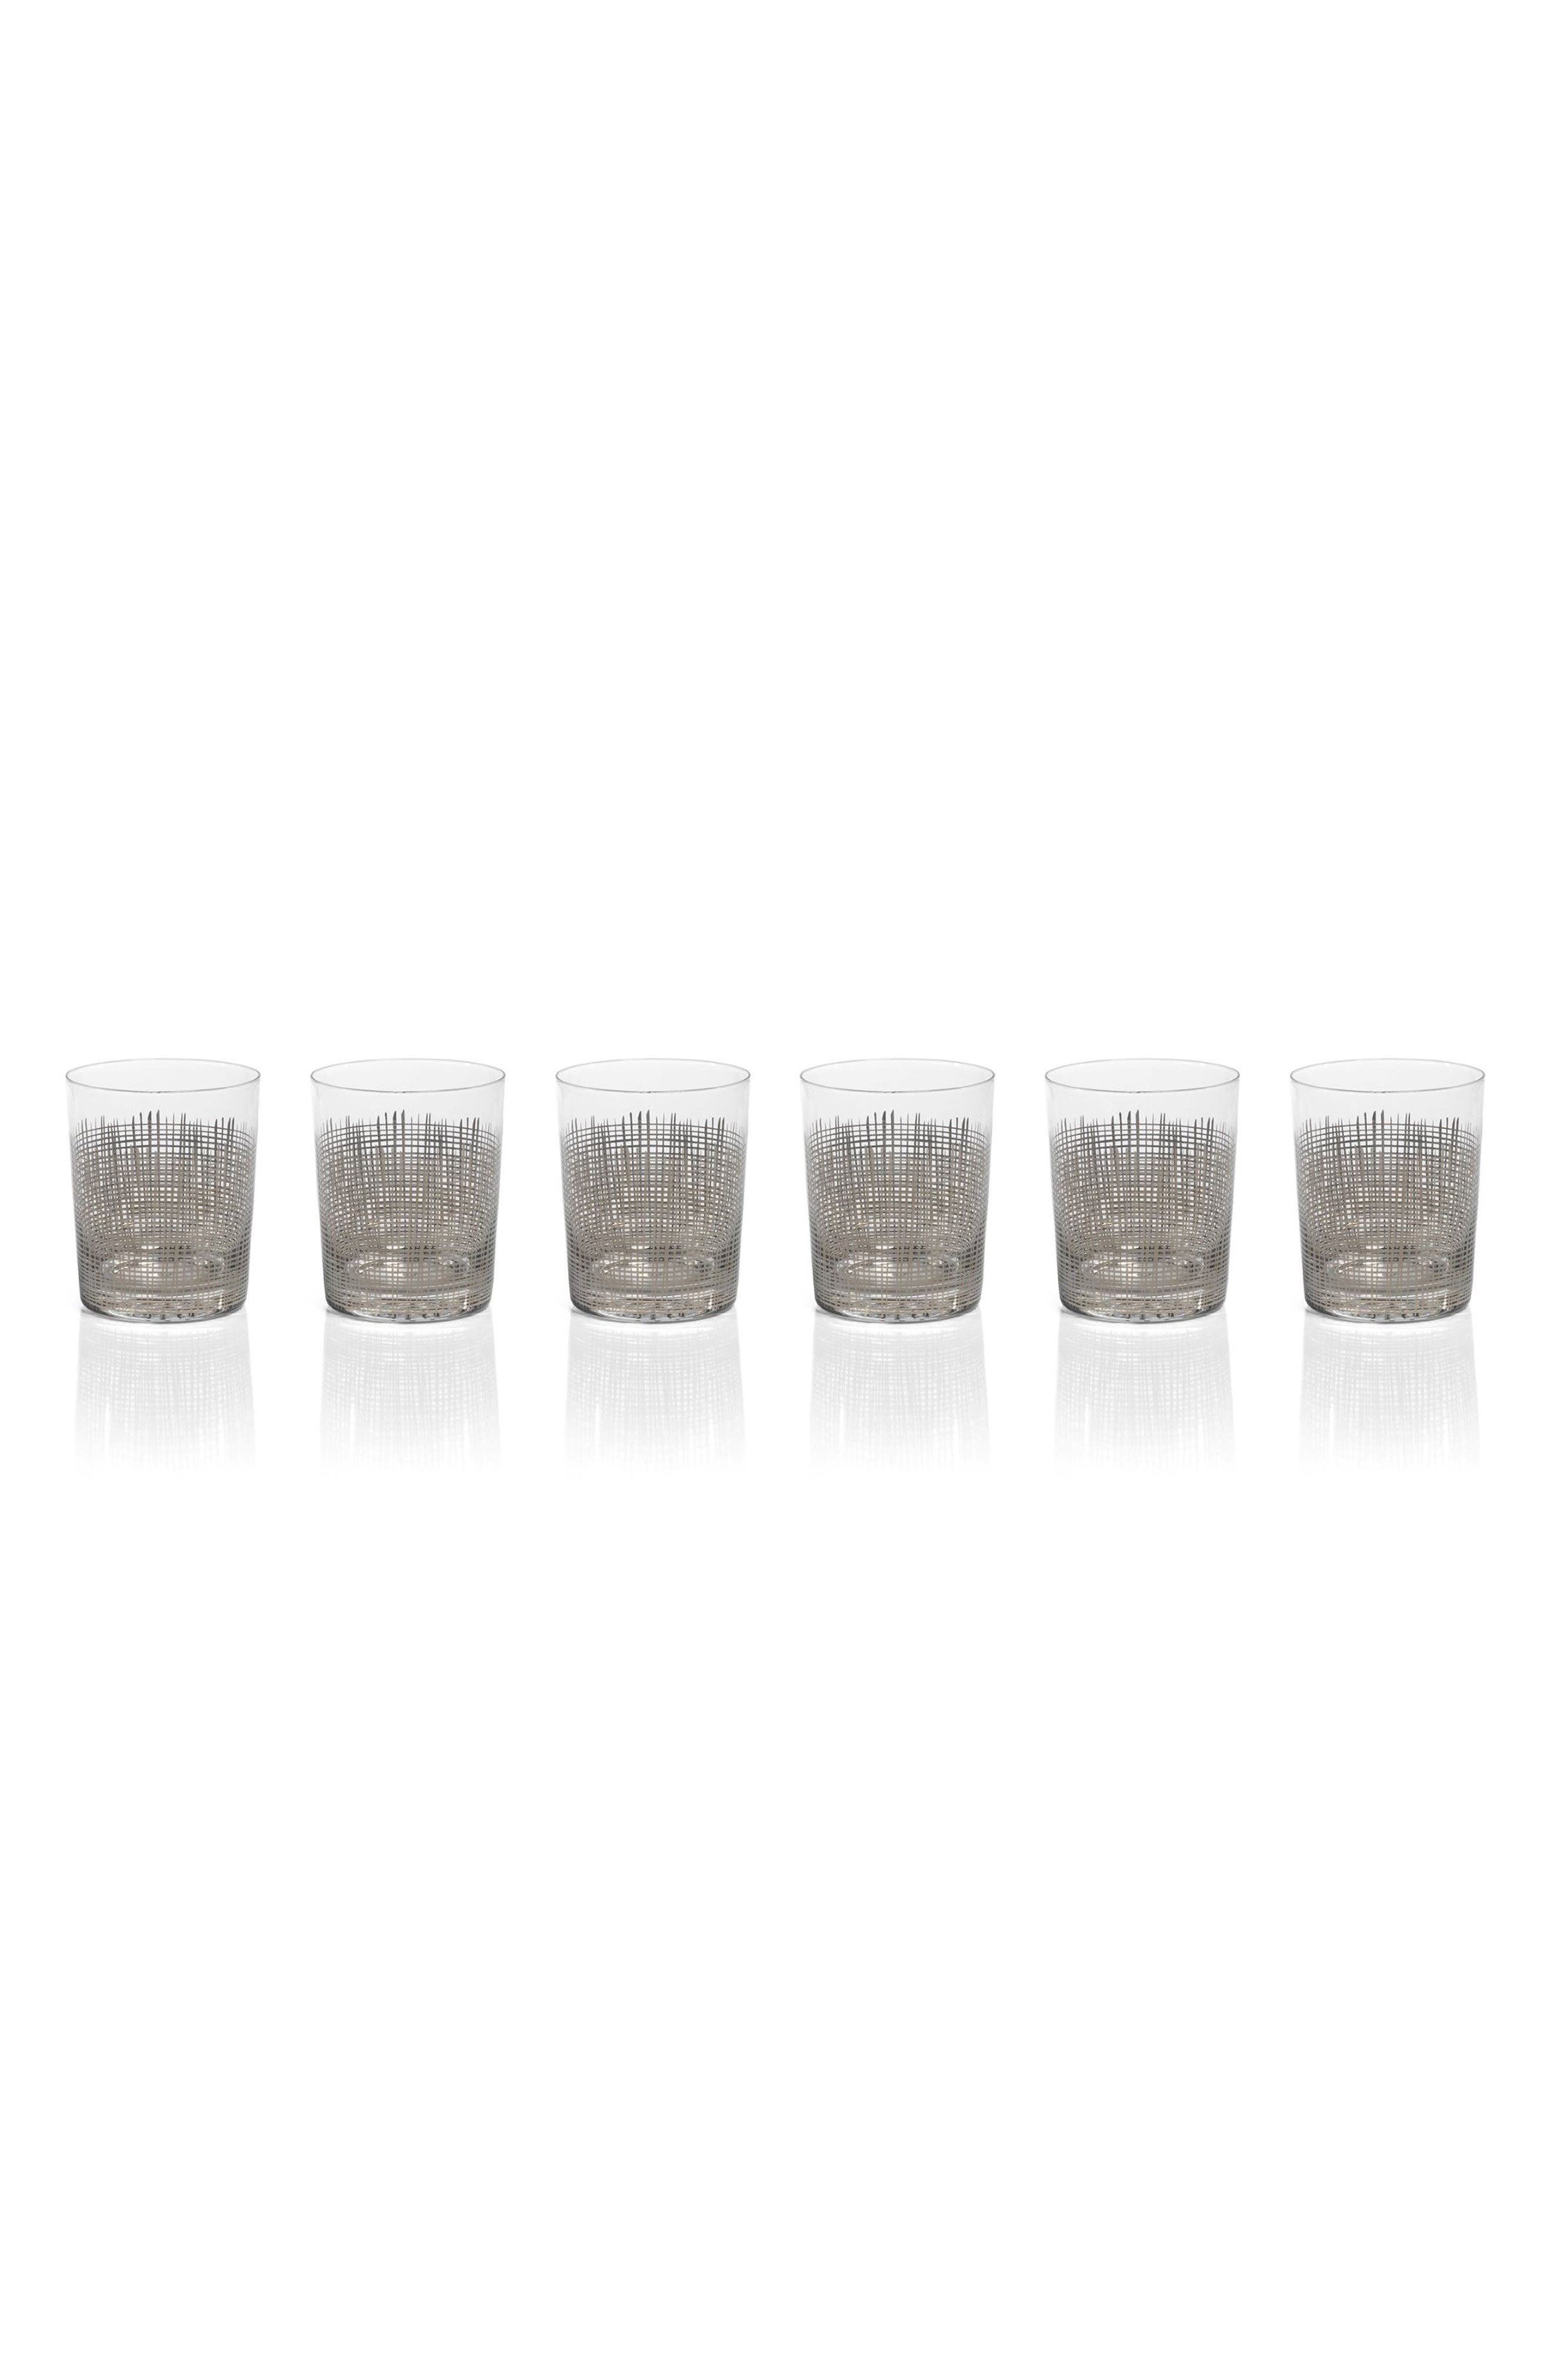 Reza Set of 6 Double Old Fashioned Glasses,                             Main thumbnail 1, color,                             040